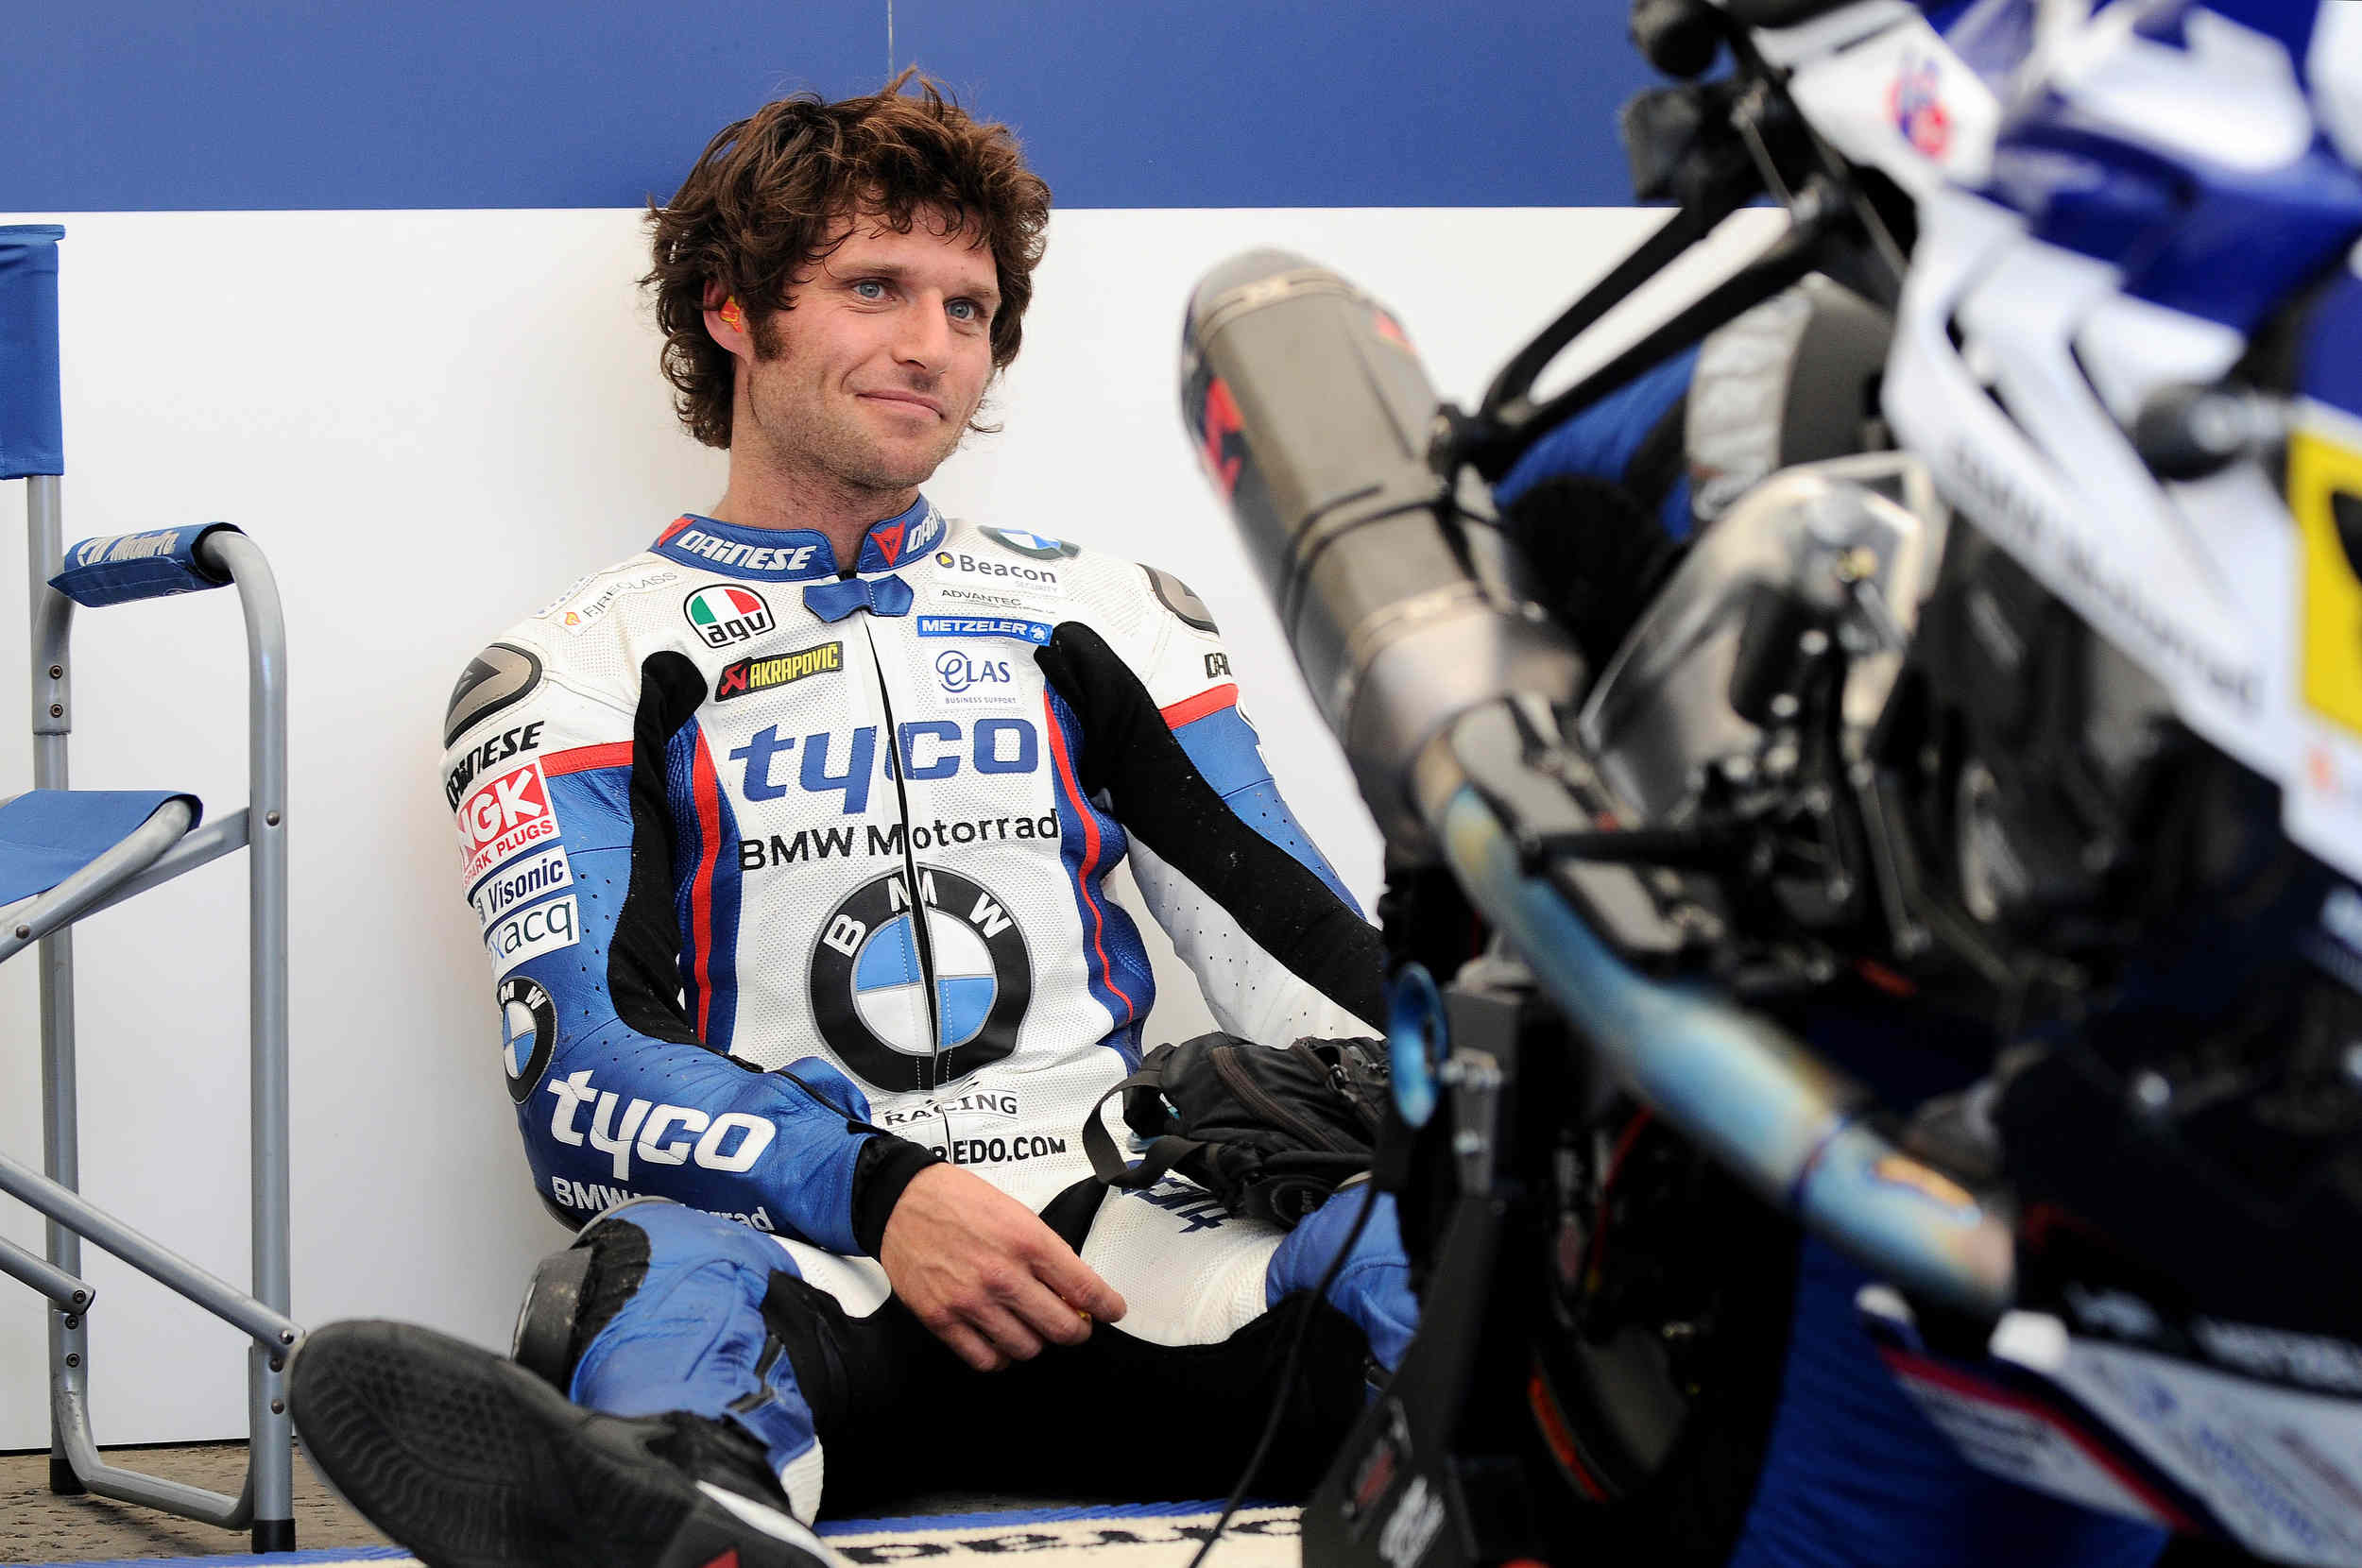 Senior TT grid, 2015 - Guy Martin